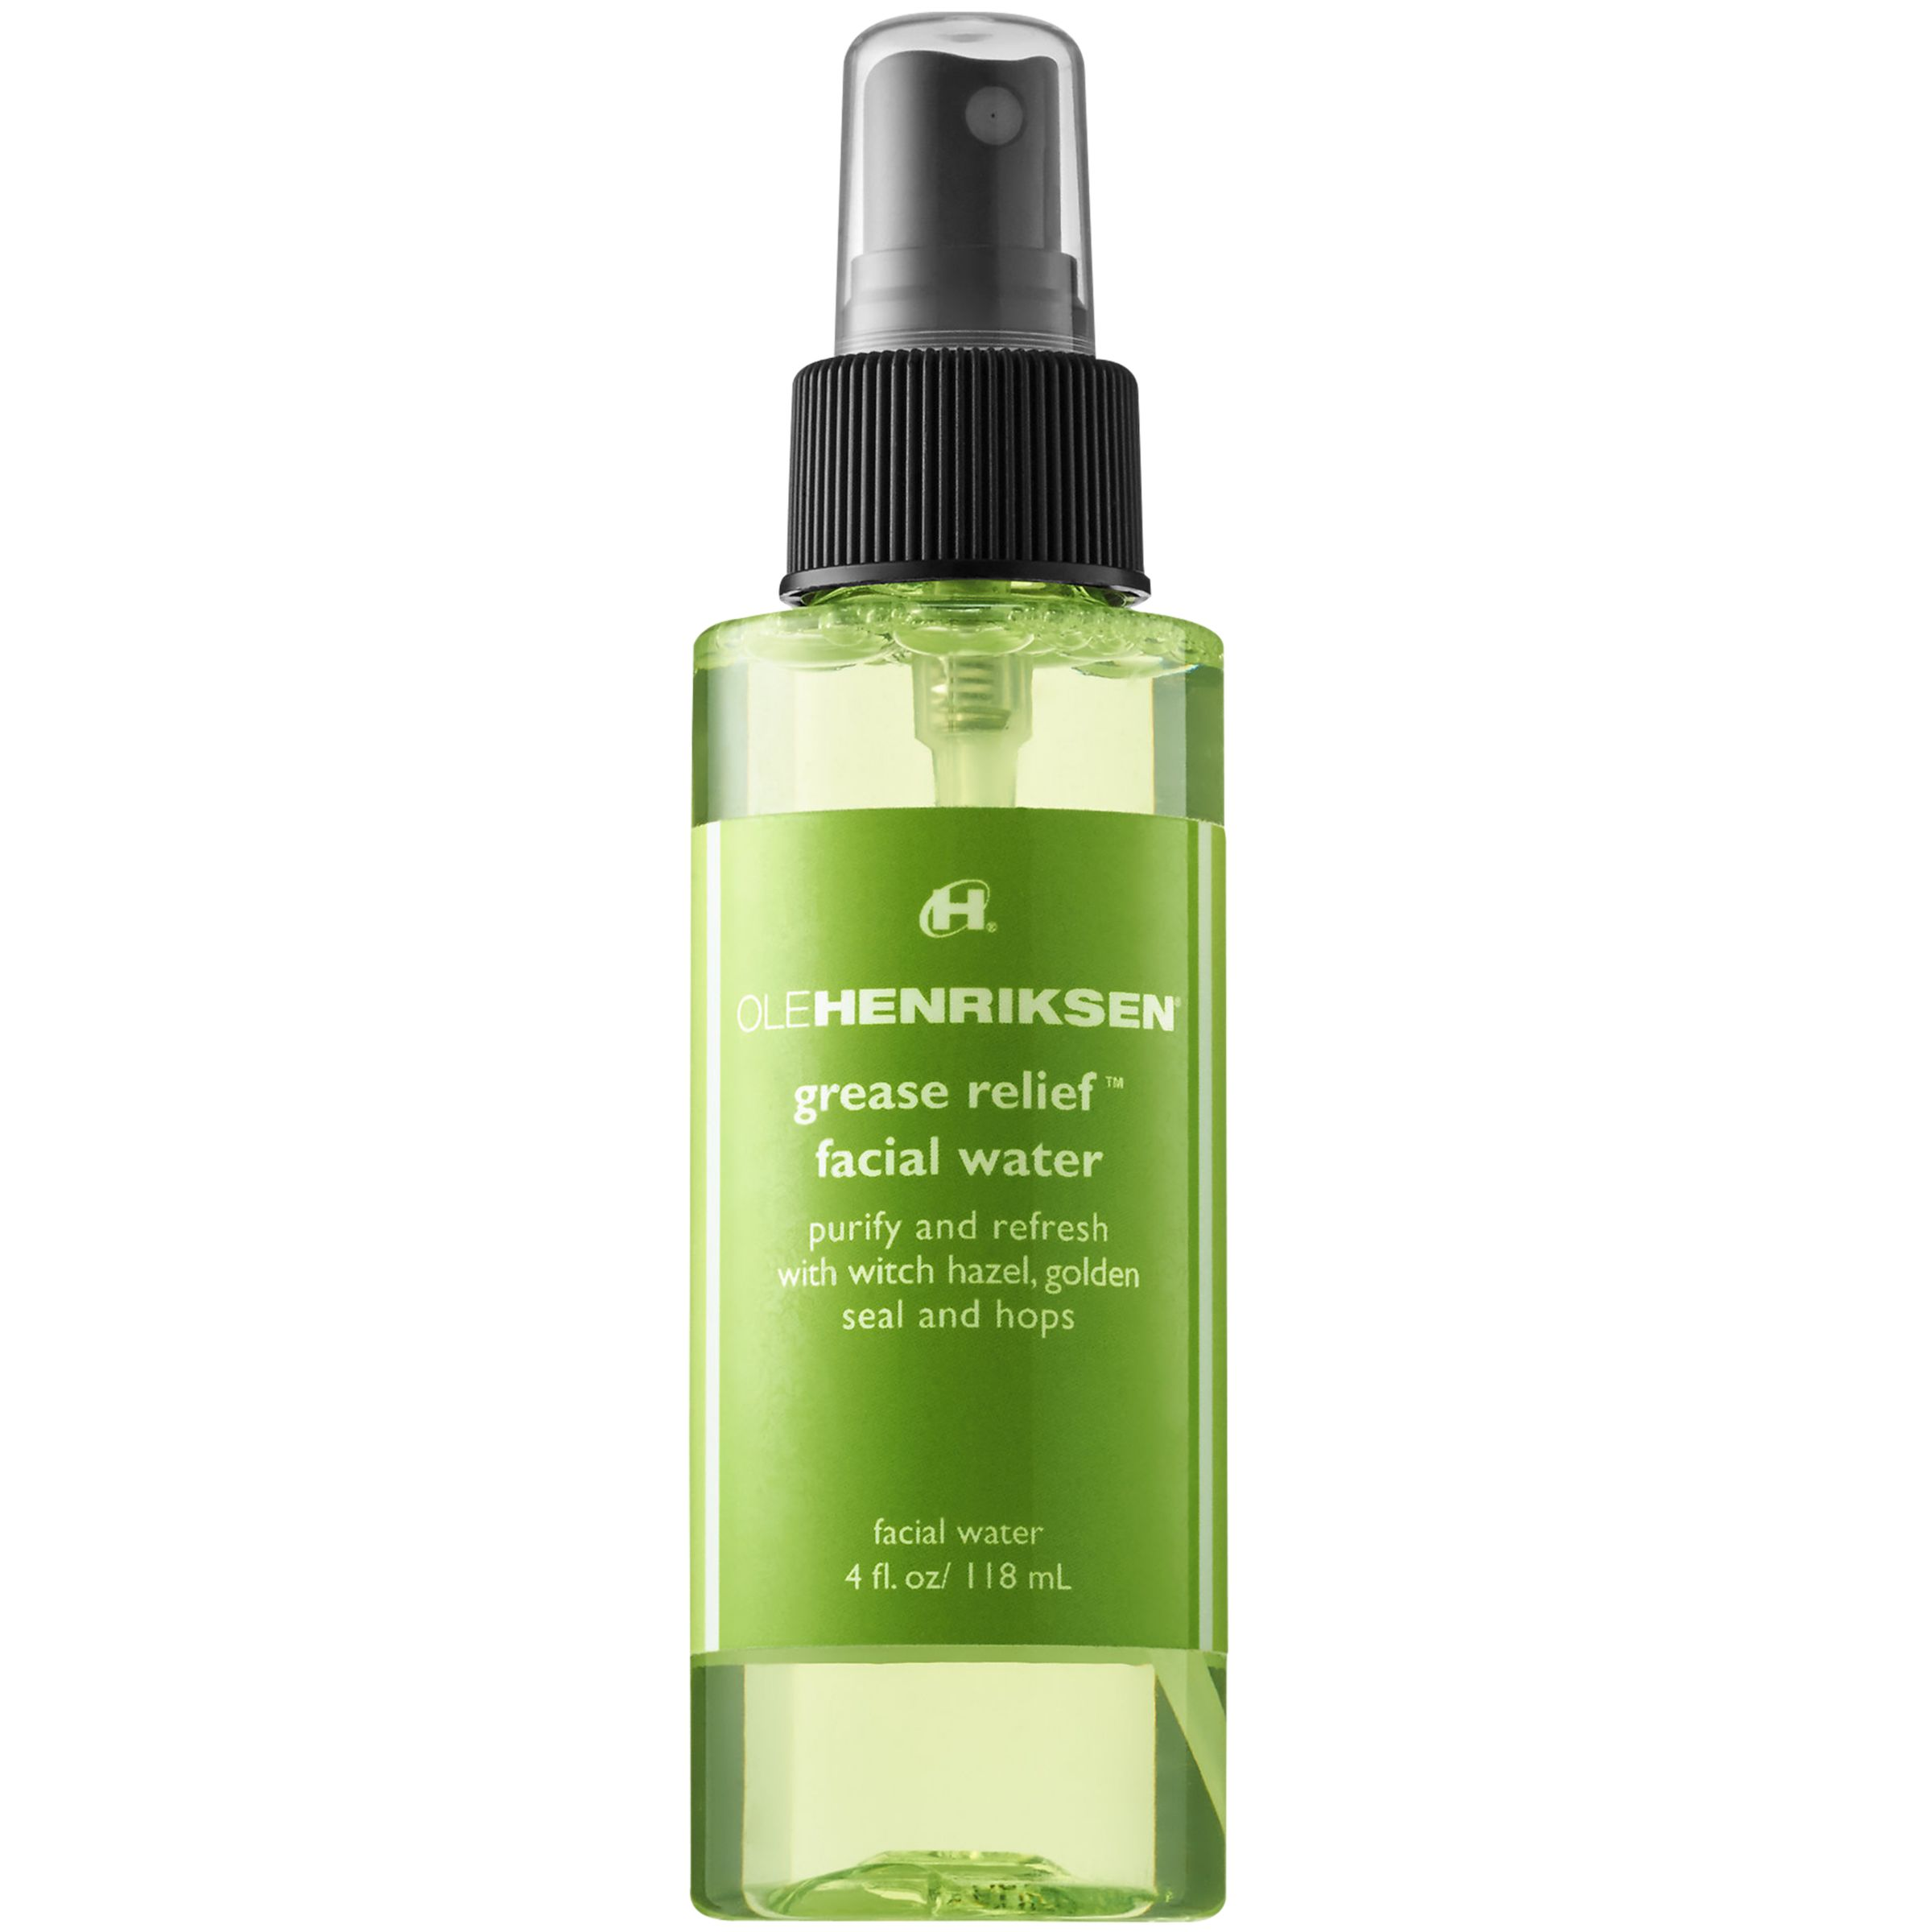 OLEHENRIKSEN OLEHENRIKSEN Grease Relief™ Facial Water, 118ml